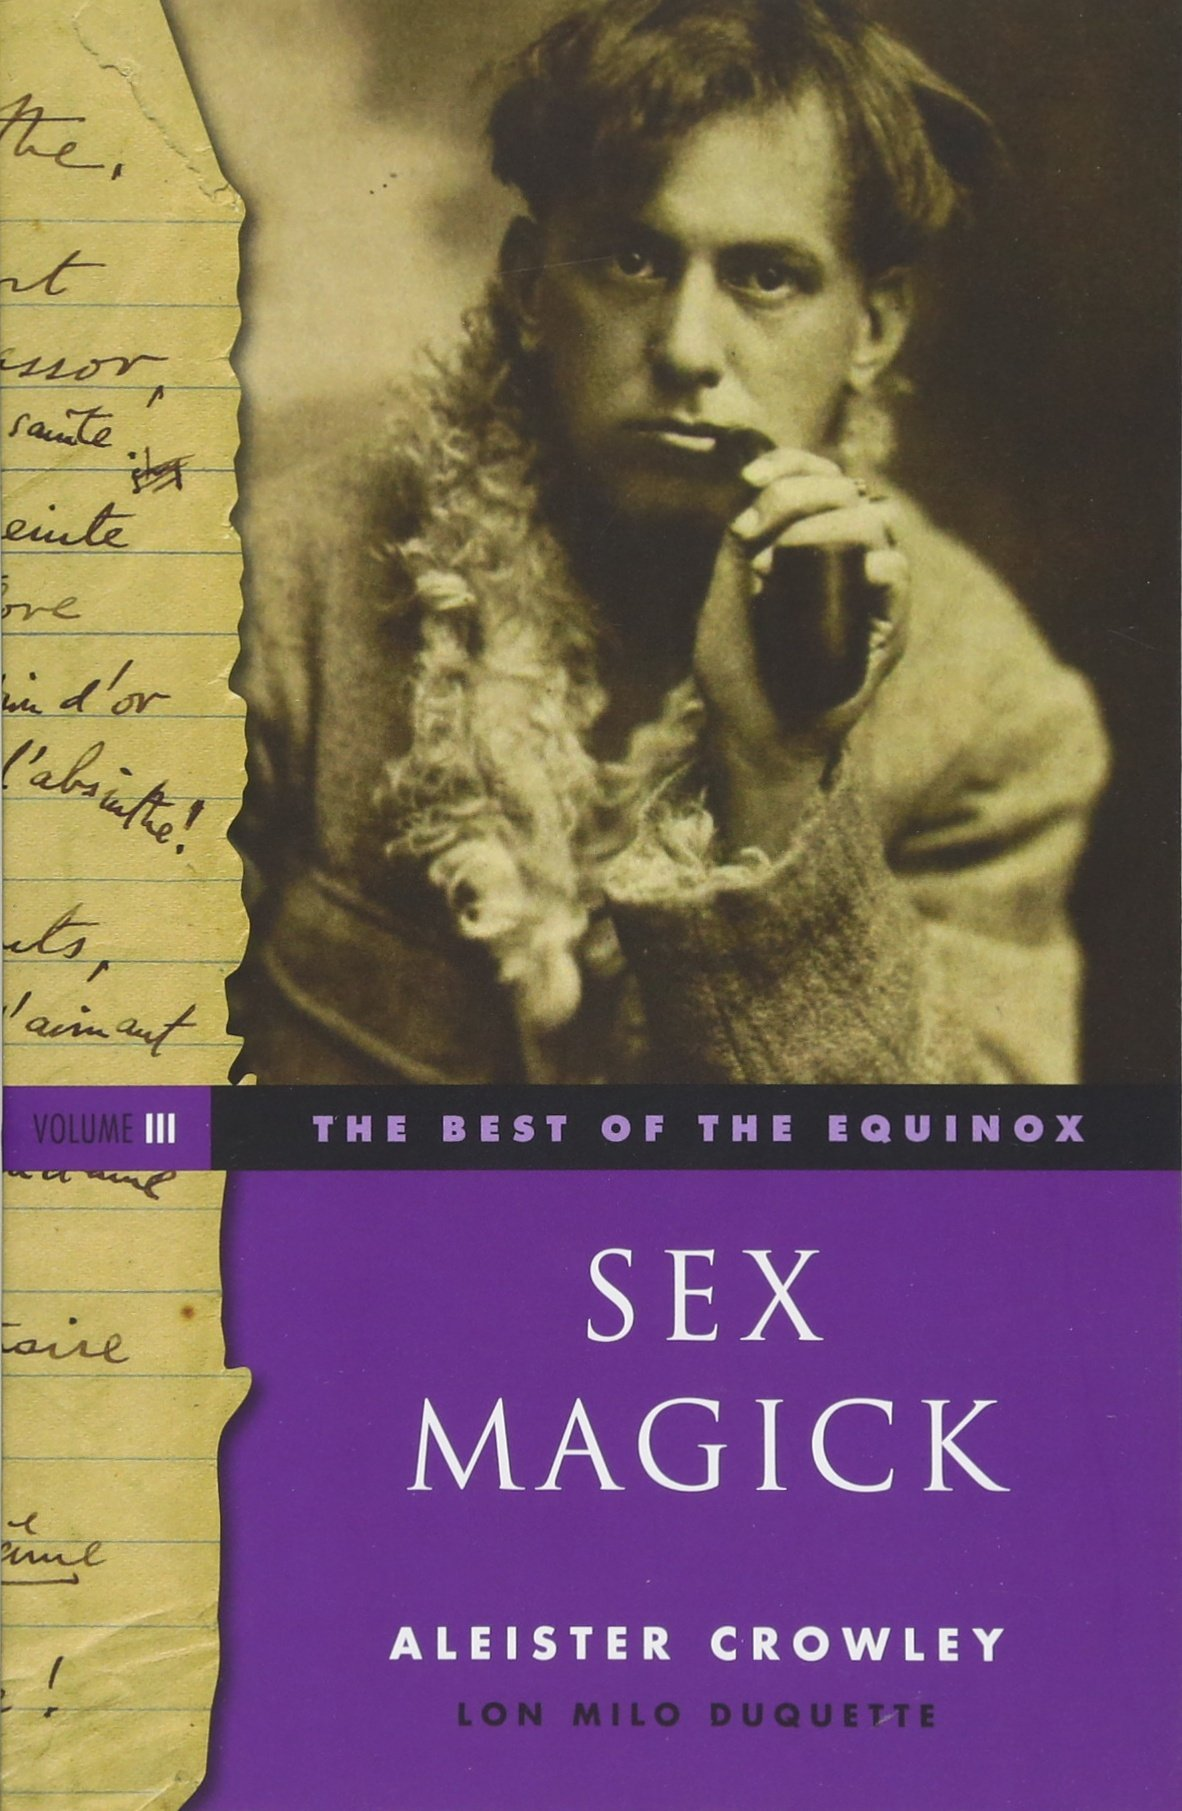 Sex magick not having sex